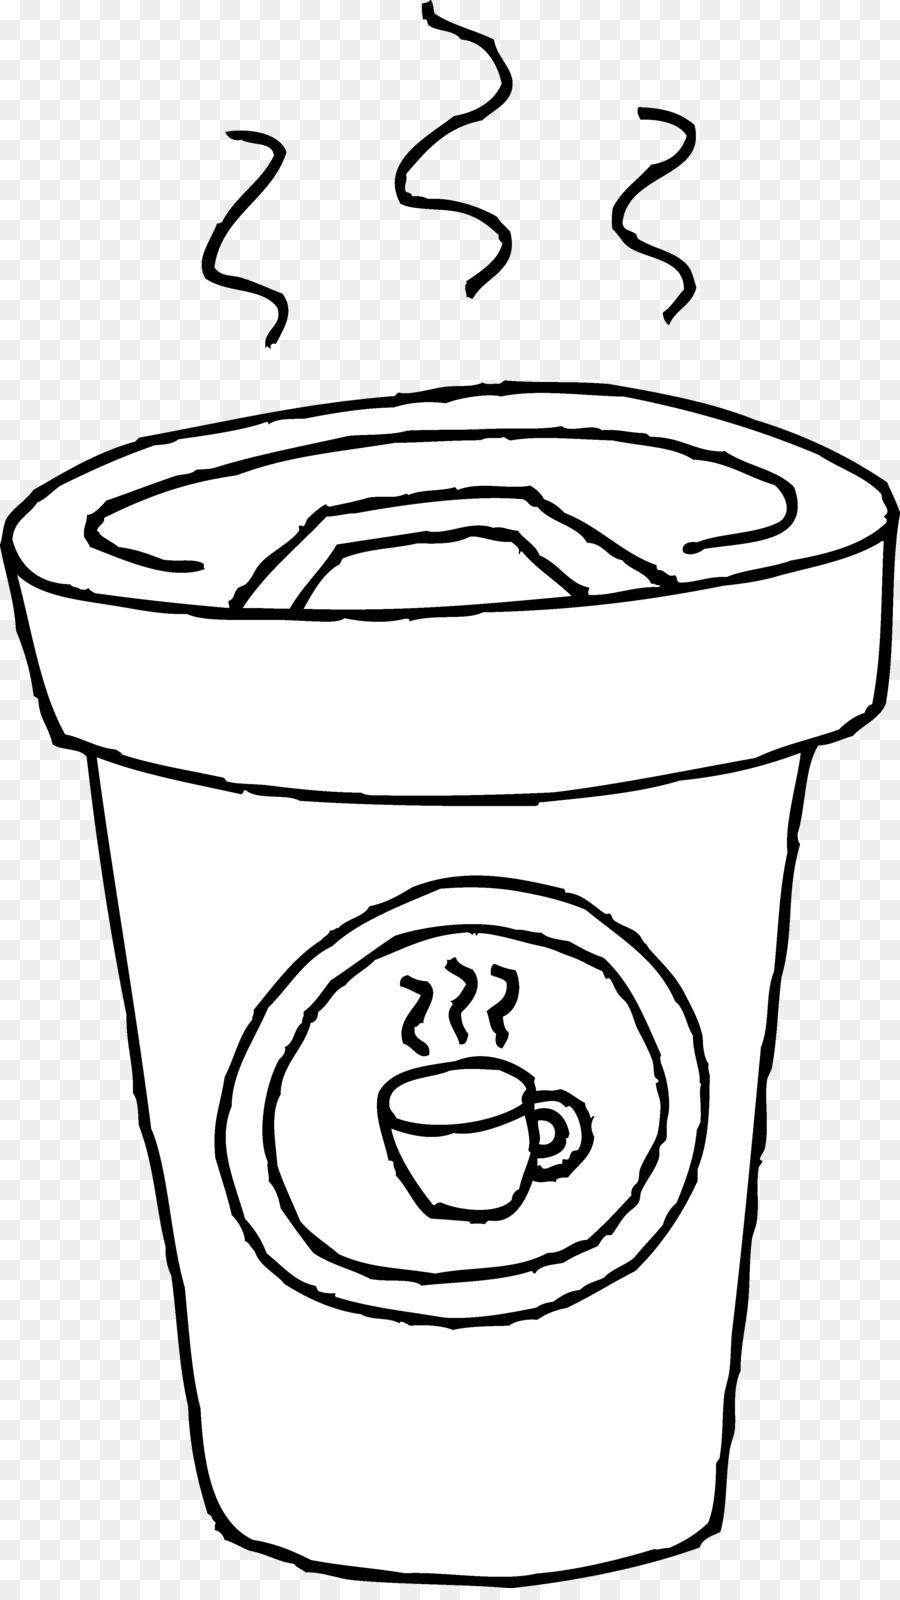 Cafe black and white clipart clip art download Starbucks Cup Background png download - 3033*5351 - Free Transparent ... clip art download